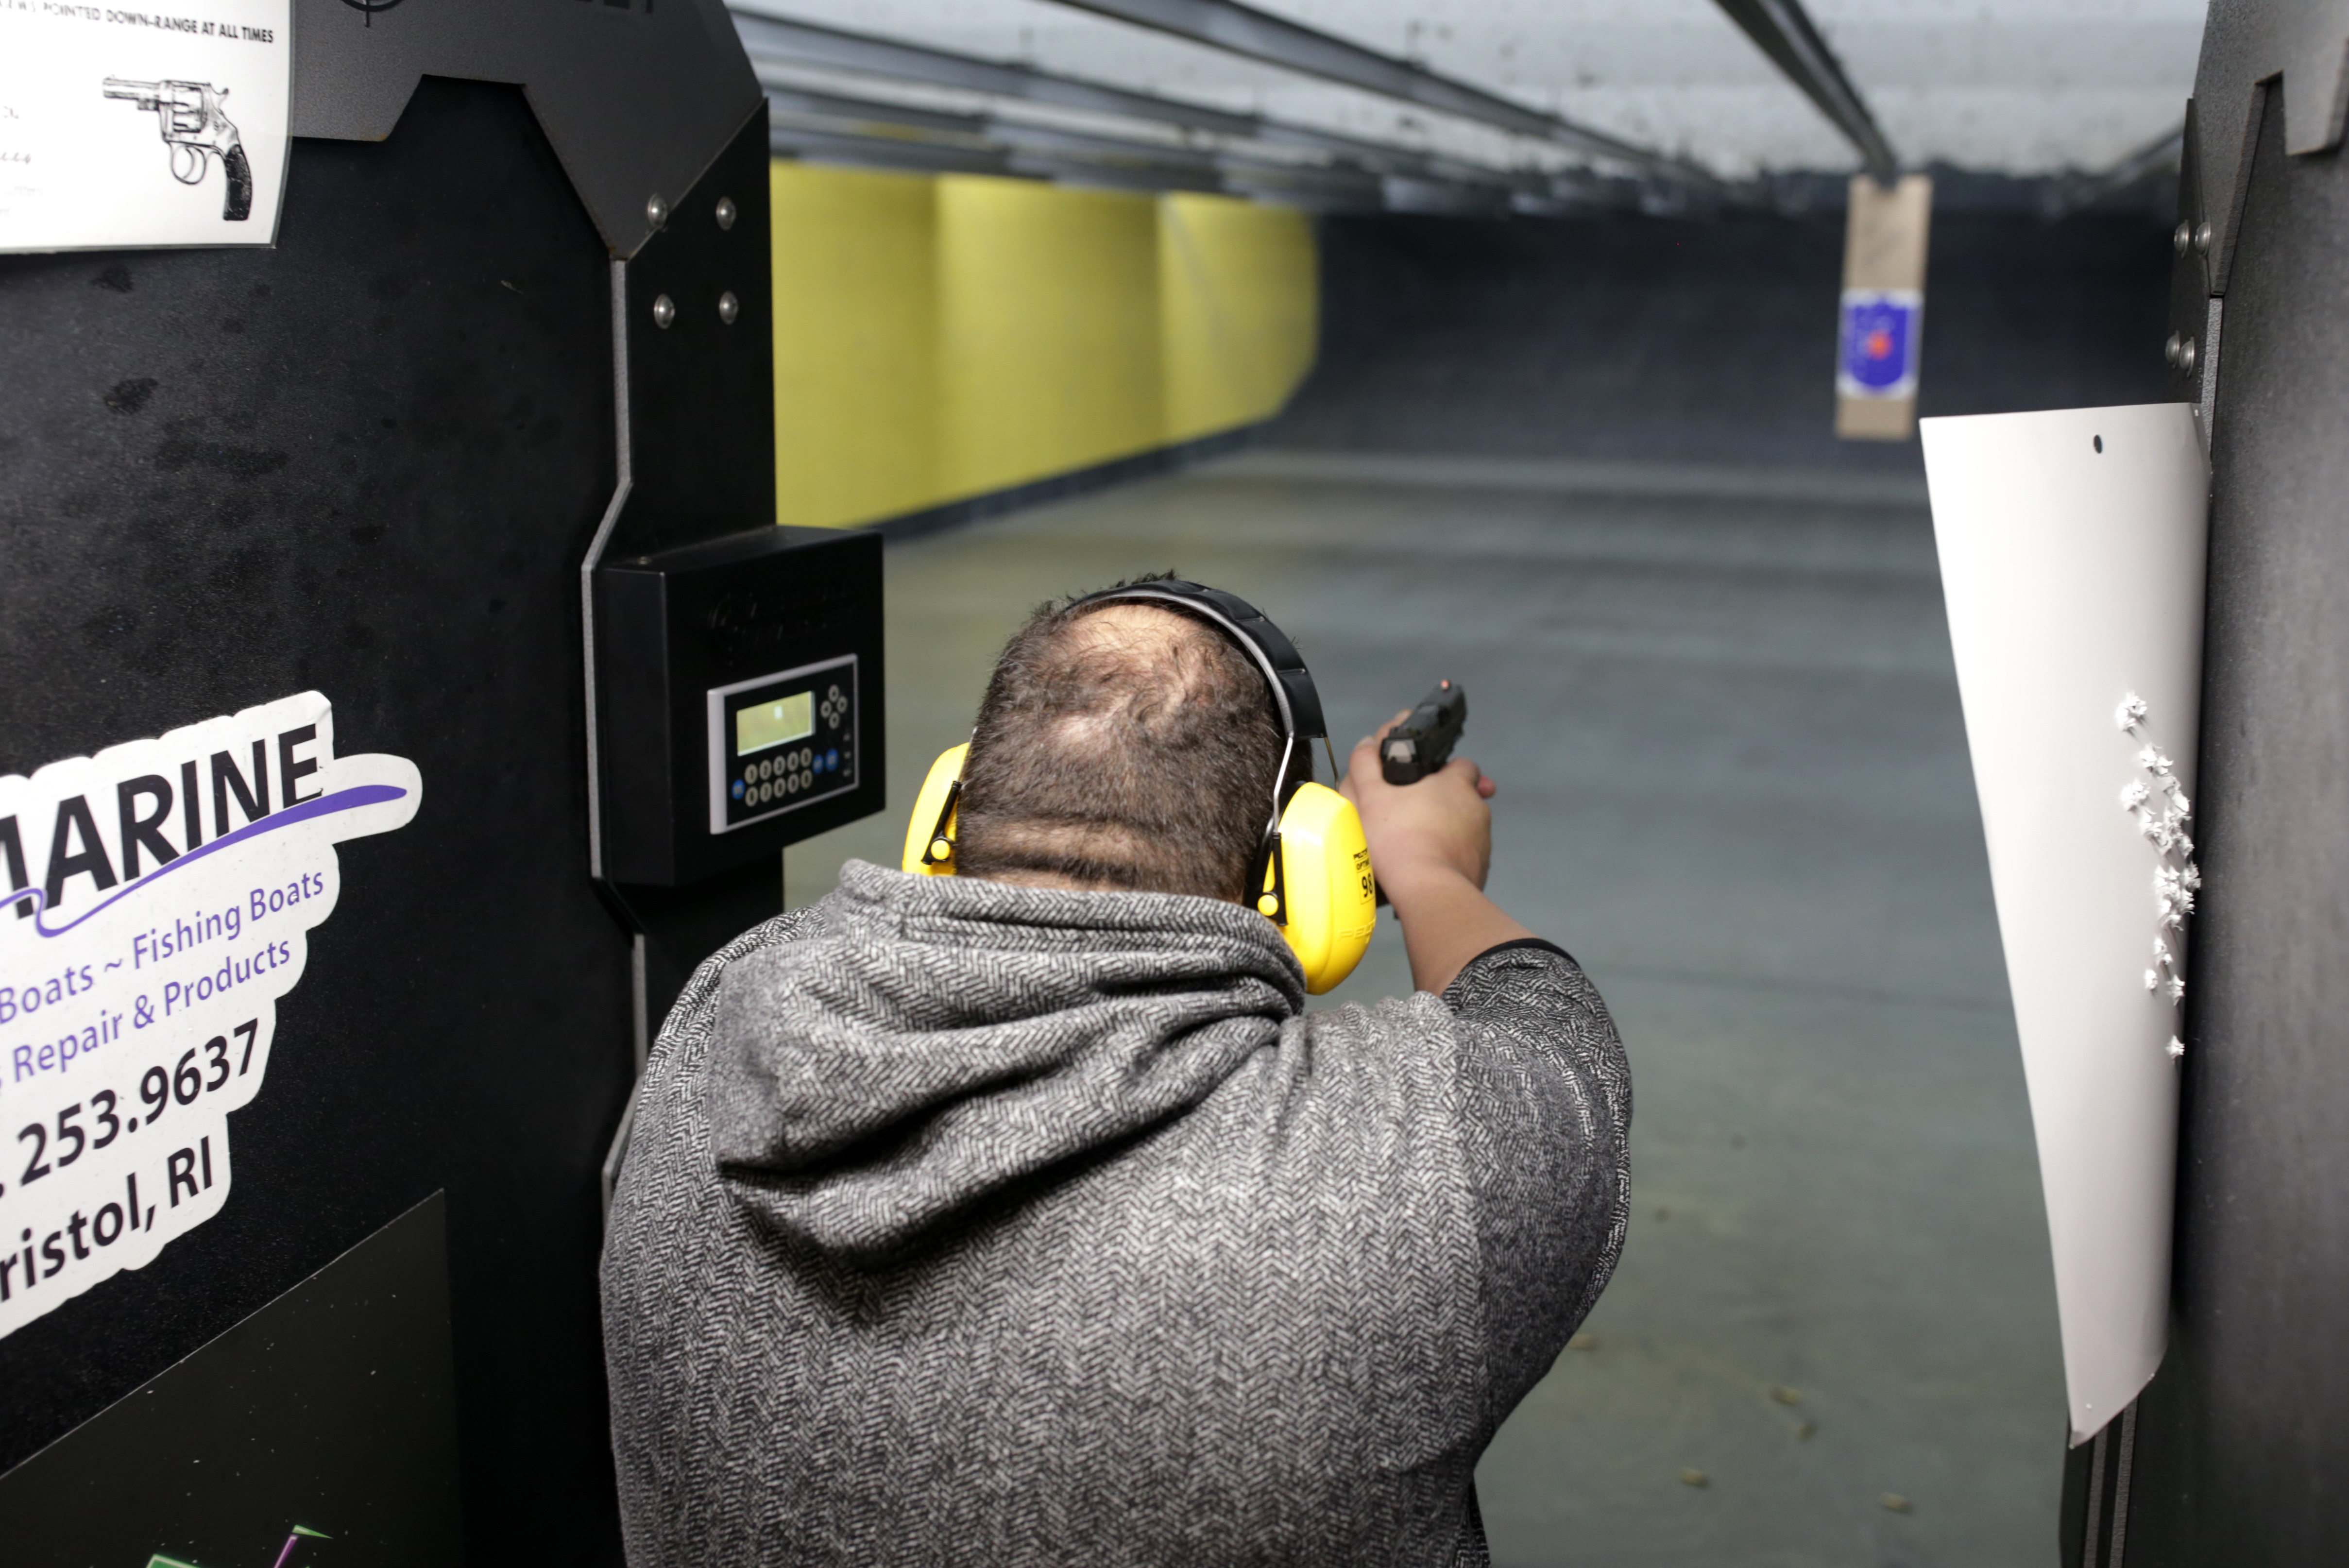 A man at the Sakonnet River Outfitters shooting range in Tiverton.